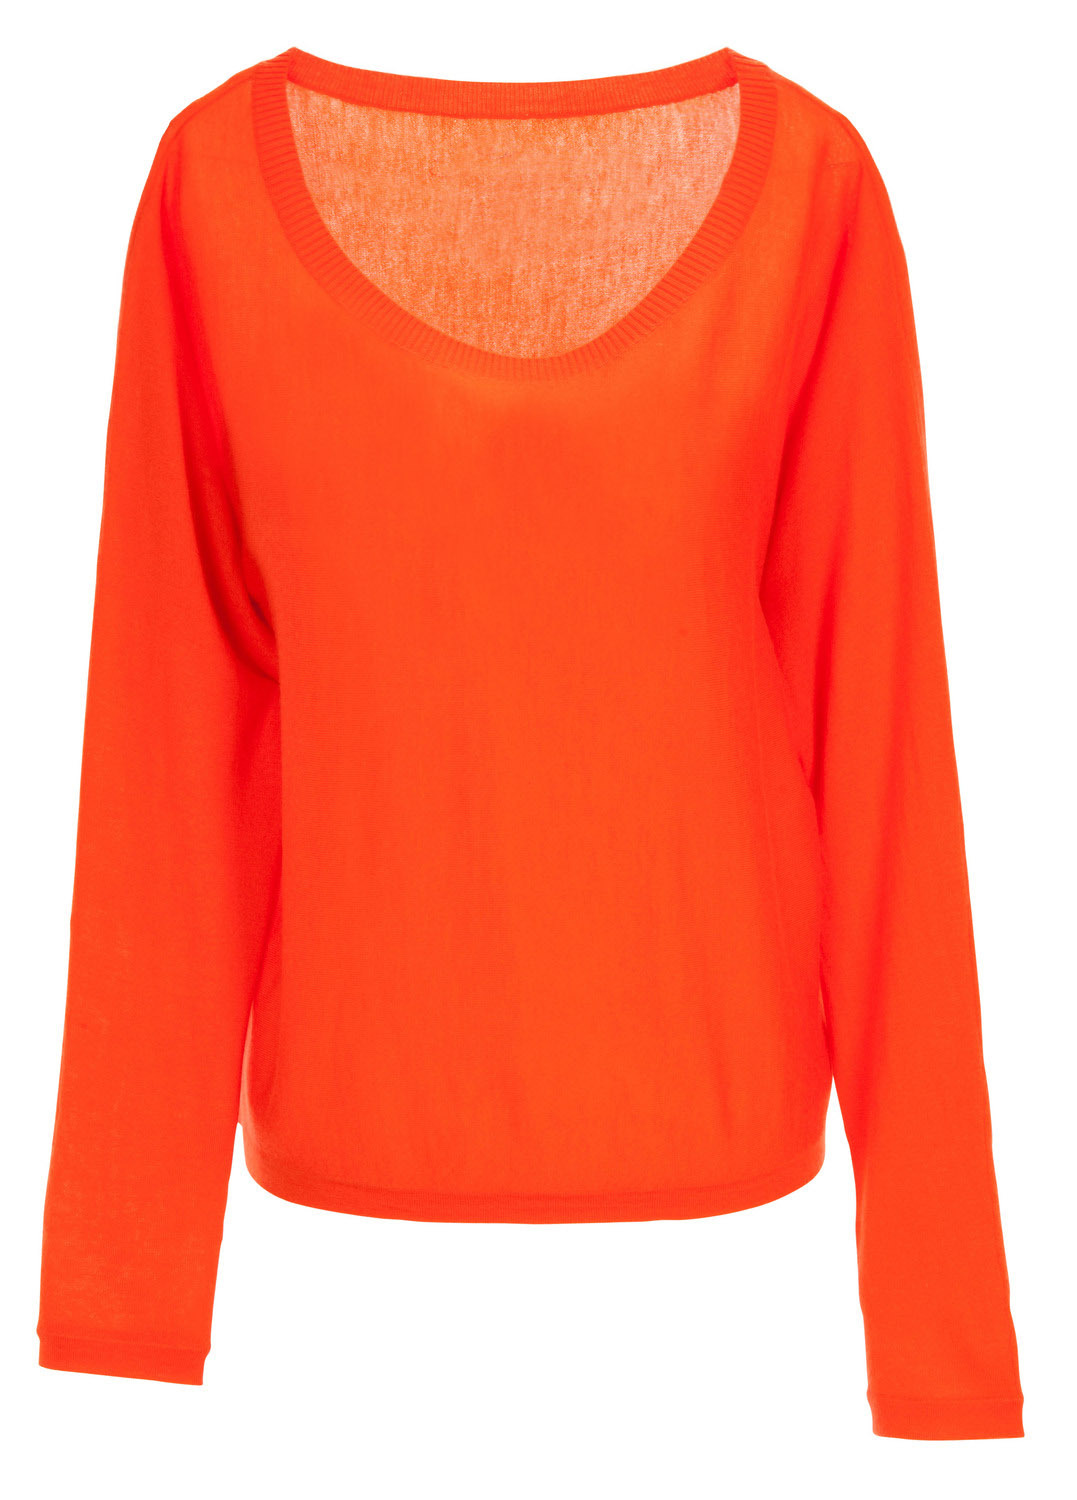 iheart-cashmere-pulli-orange